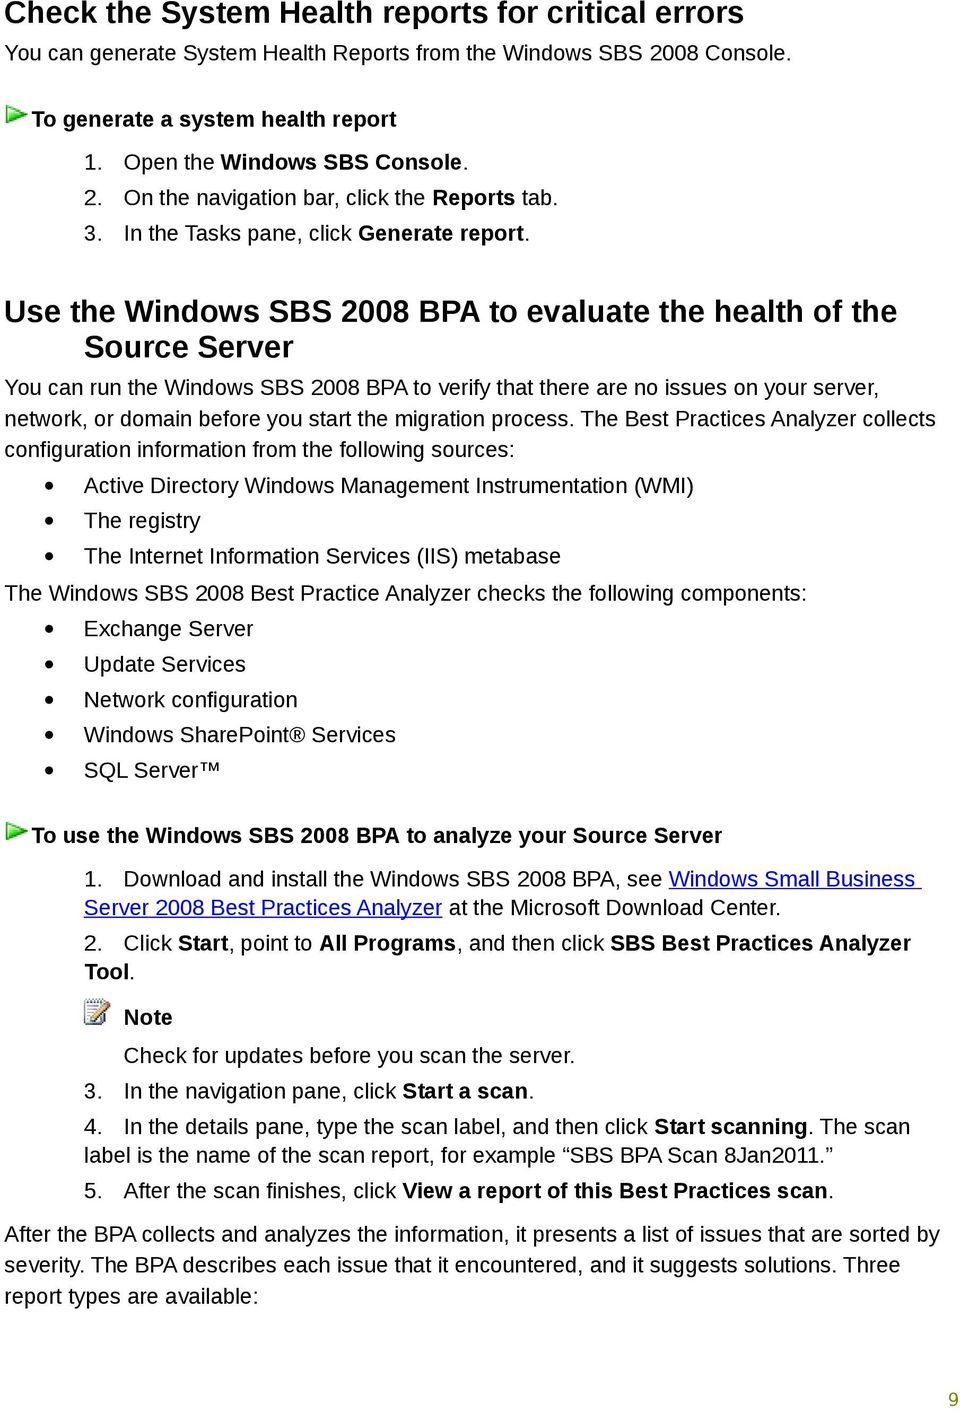 Use the Windows SBS 2008 BPA to evaluate the health of the Source Server You can run the Windows SBS 2008 BPA to verify that there are no issues on your server, network, or domain before you start